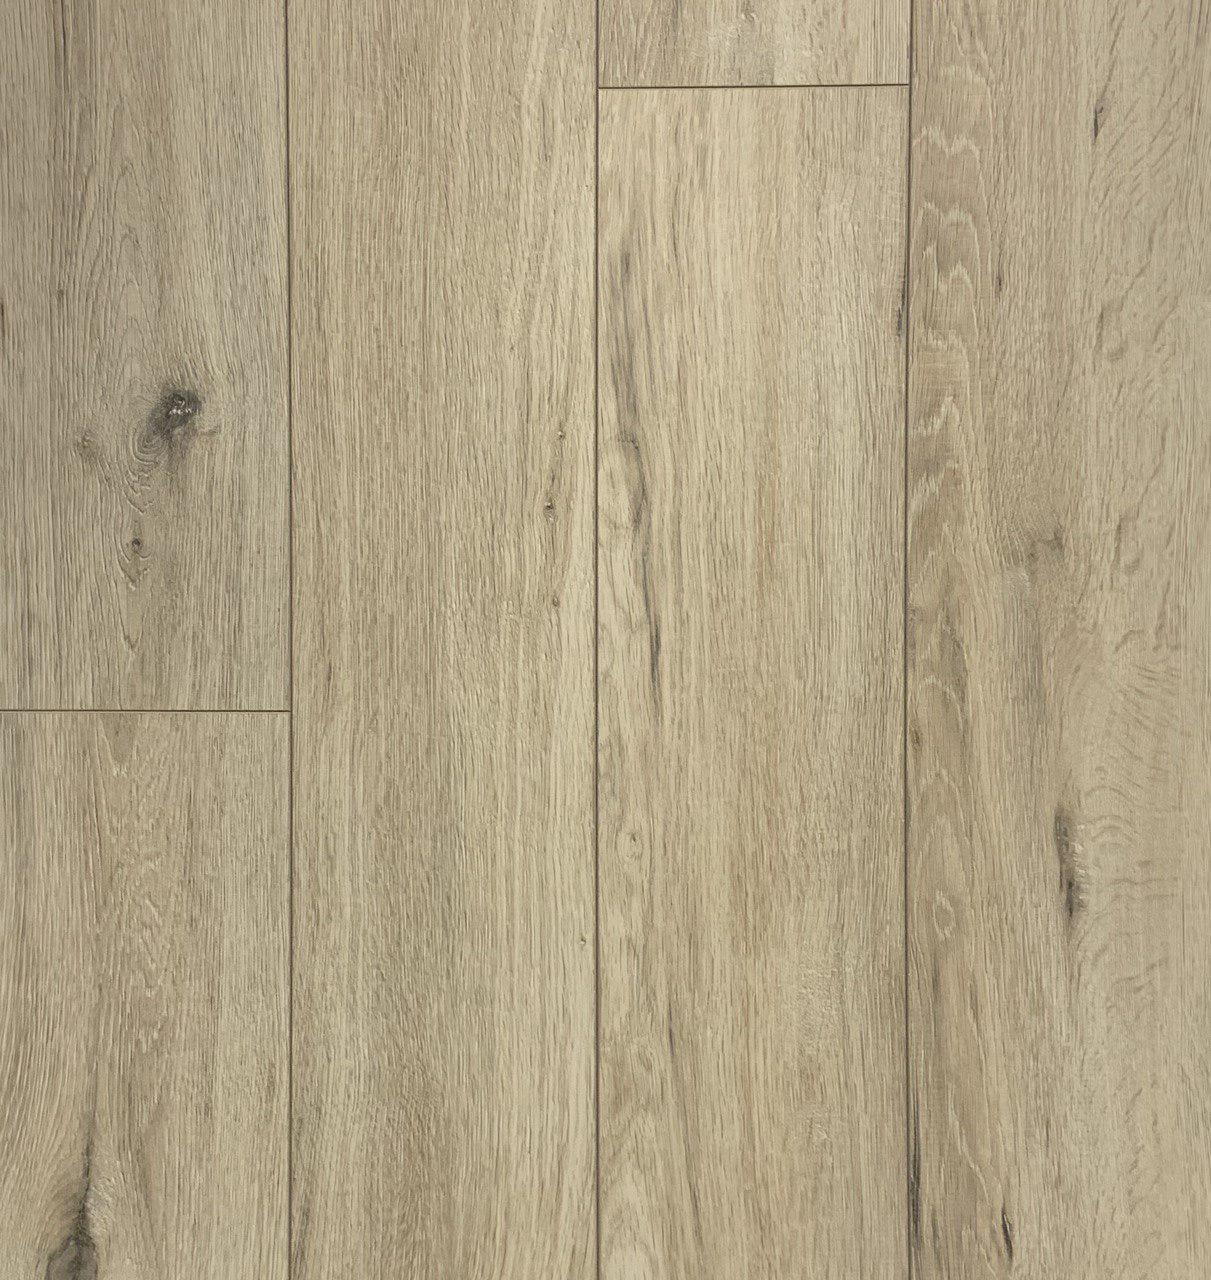 Uniboard Laminate Flooring Campania Oak Best Brands Clearance